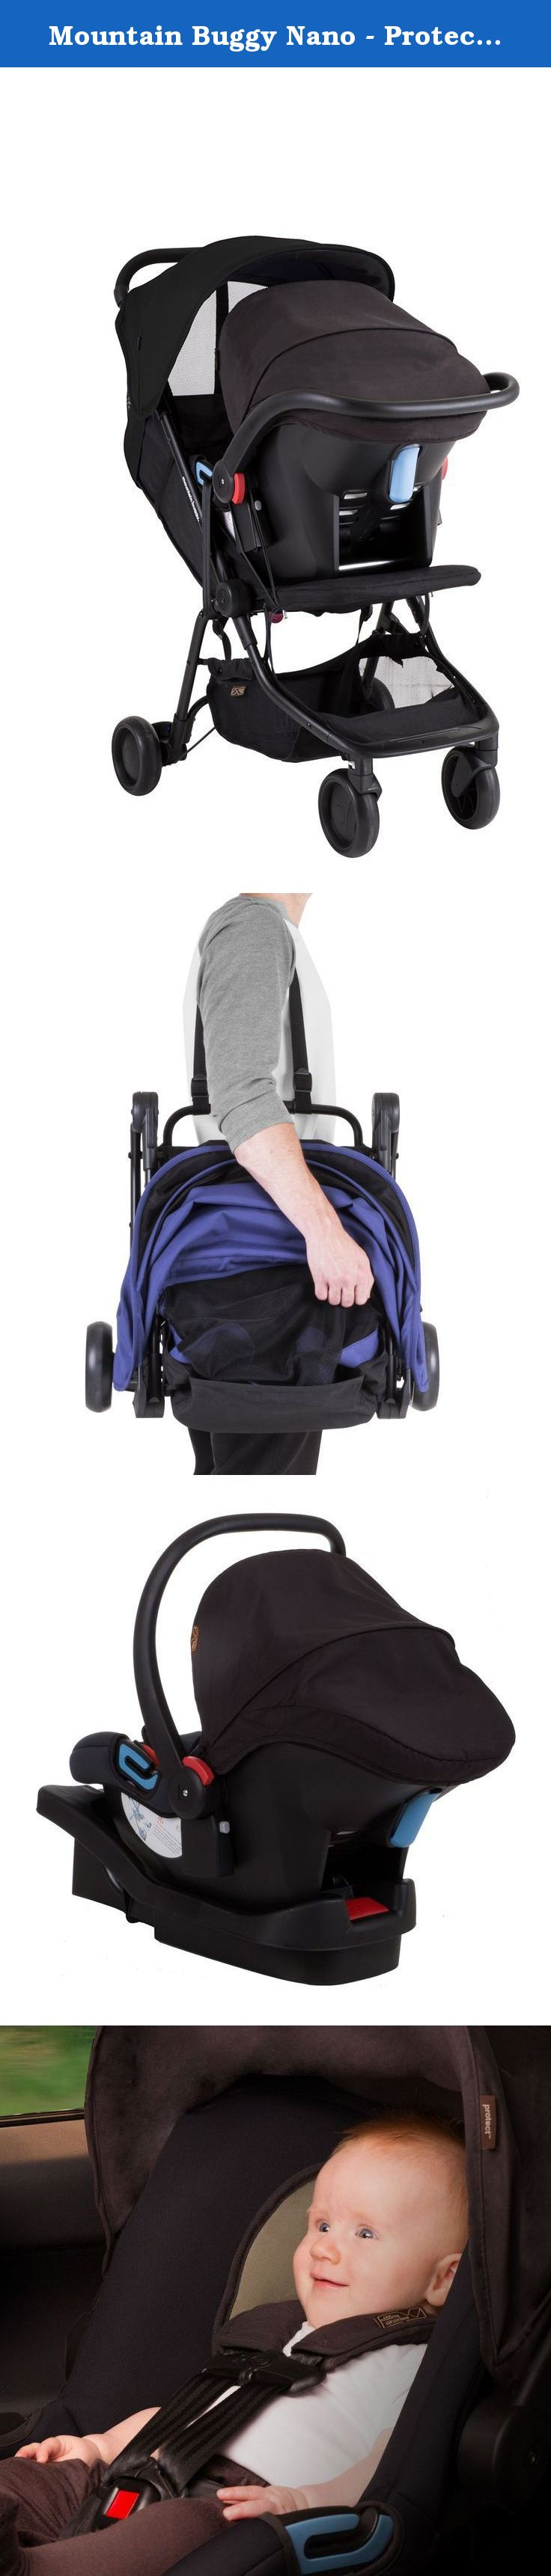 Mountain Buggy Nano Protect Travel System, Black